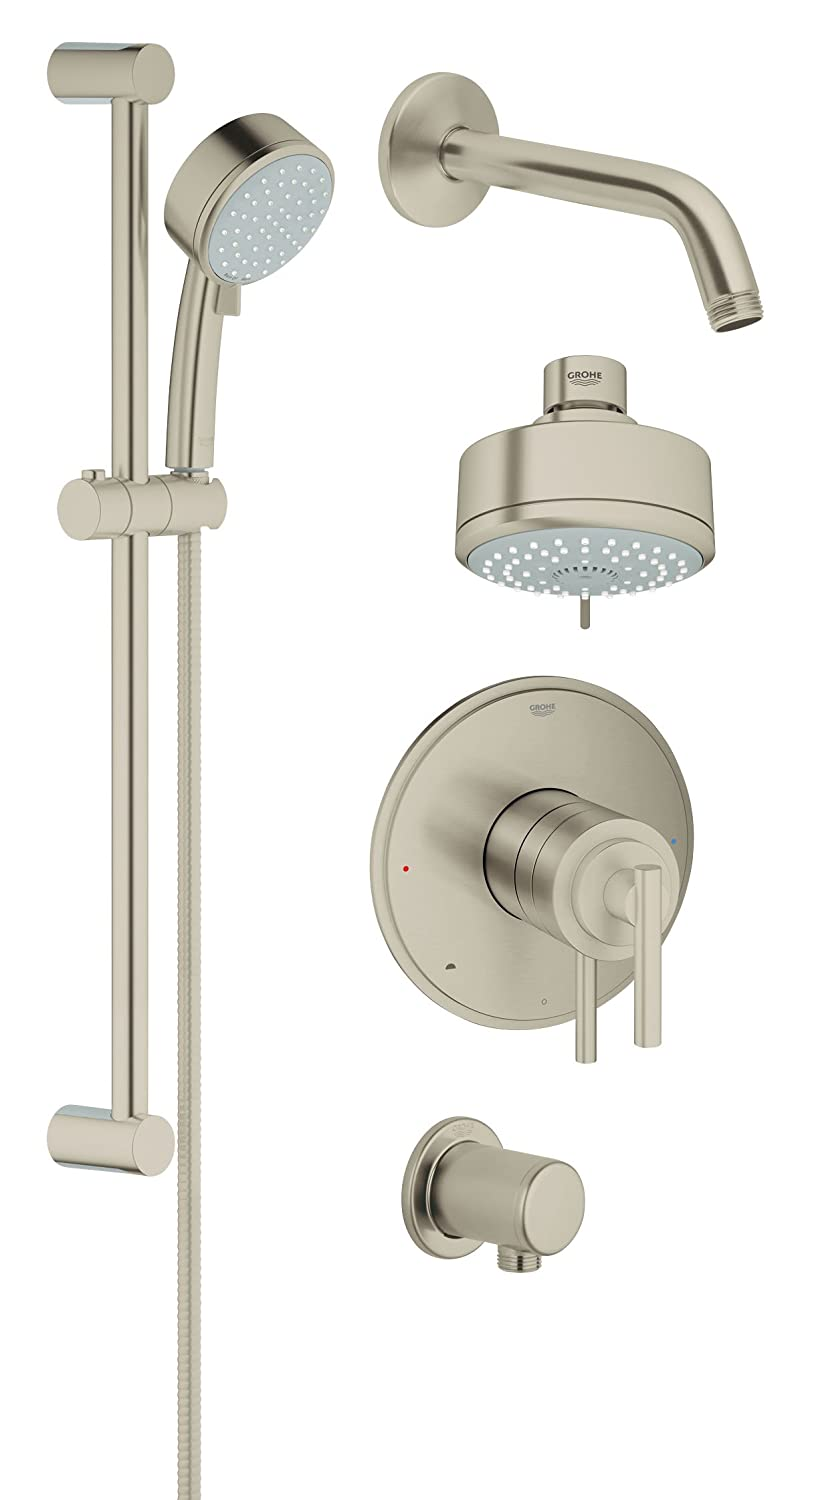 Grohflex Timeless 4-Spray 2-Function Pressure Balance Shower System ...